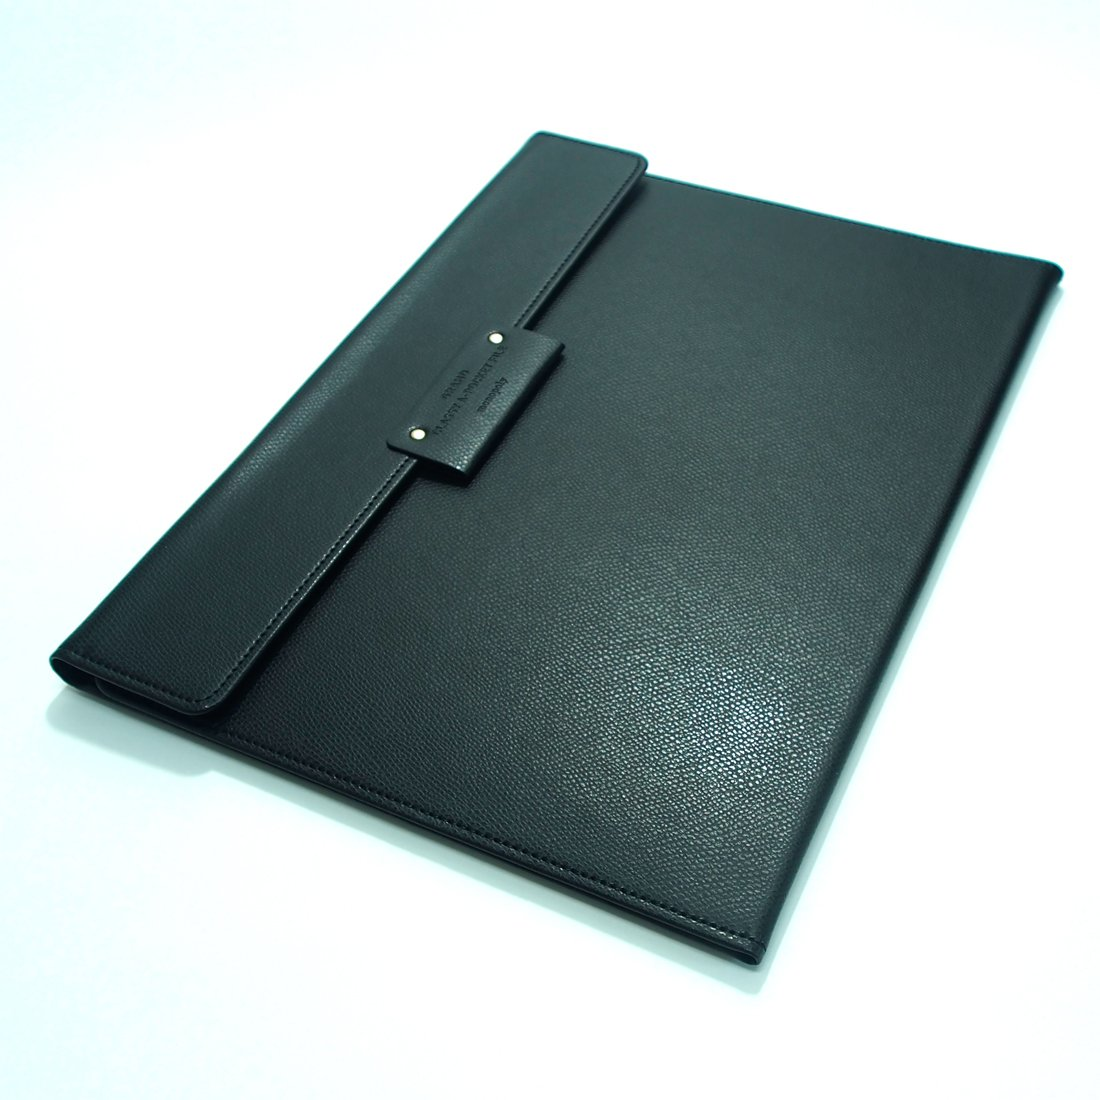 Grand Classy 8 Pockets File Holder with AHZOA Pencil (black) by Monopoly (Image #7)